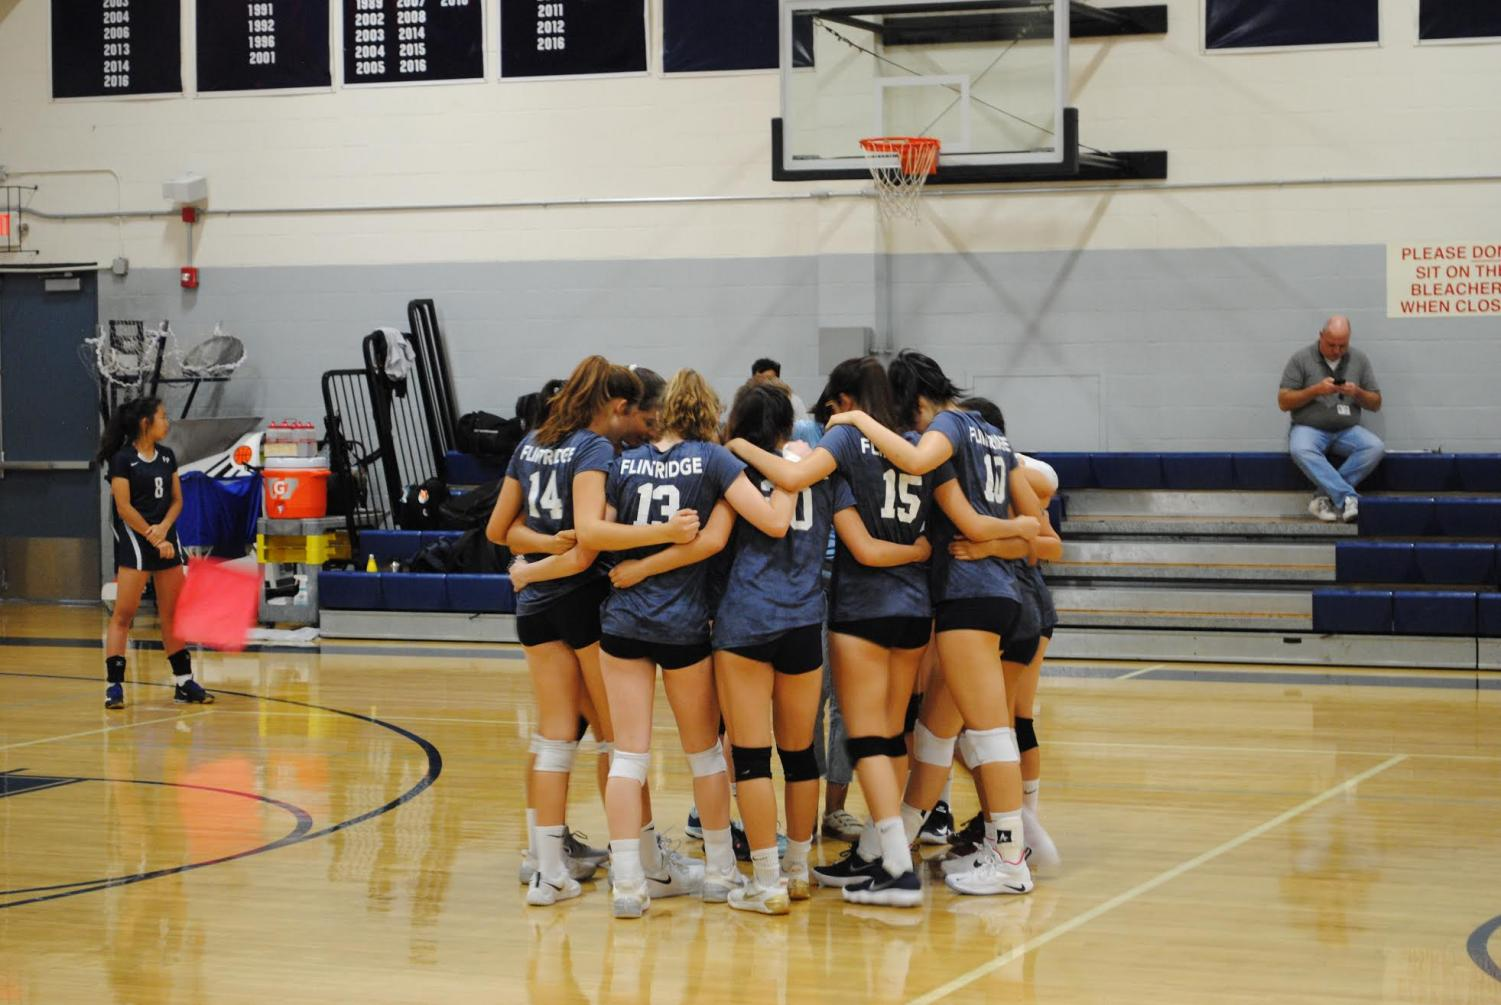 The girls' volleyball team huddles during the match.